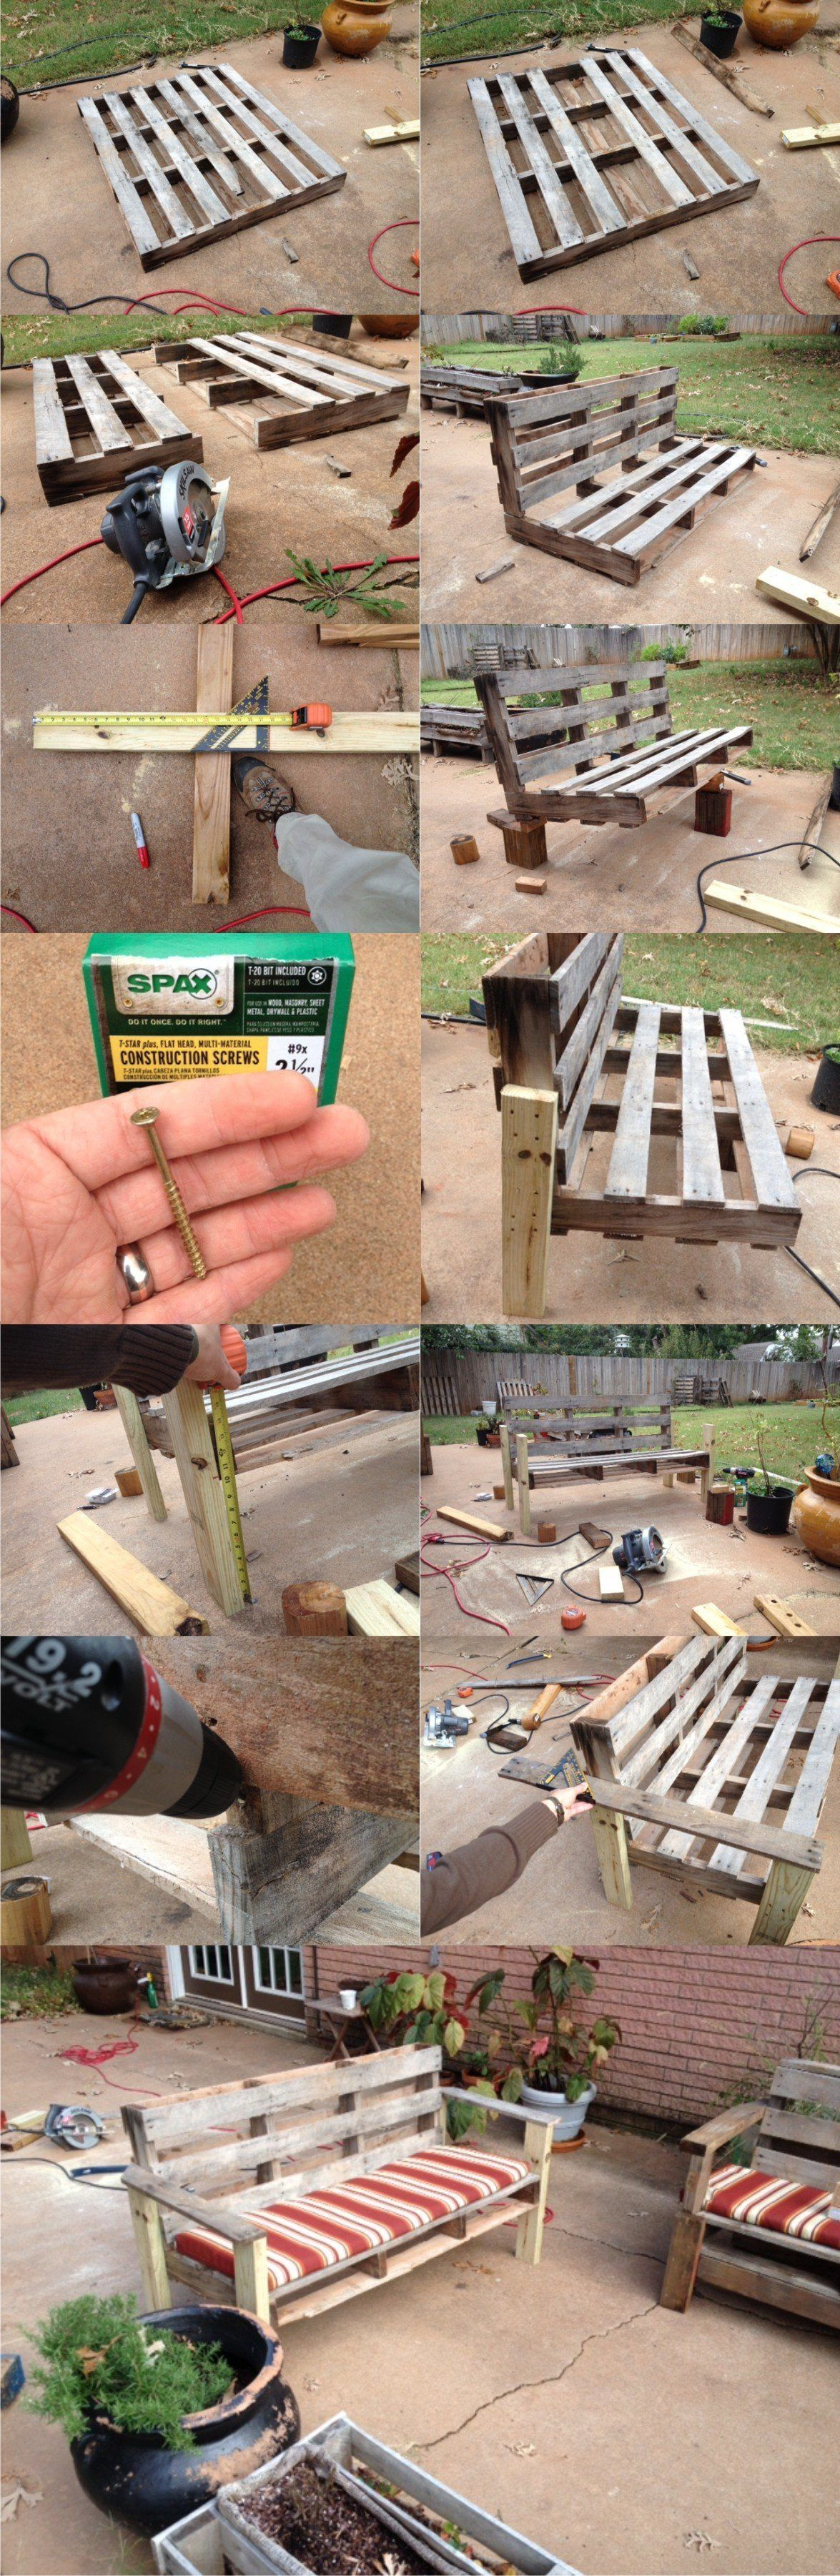 diy outdoor pallet furniture. Turn A Pallet Into An Outdoor Patio Bench Diy Furniture